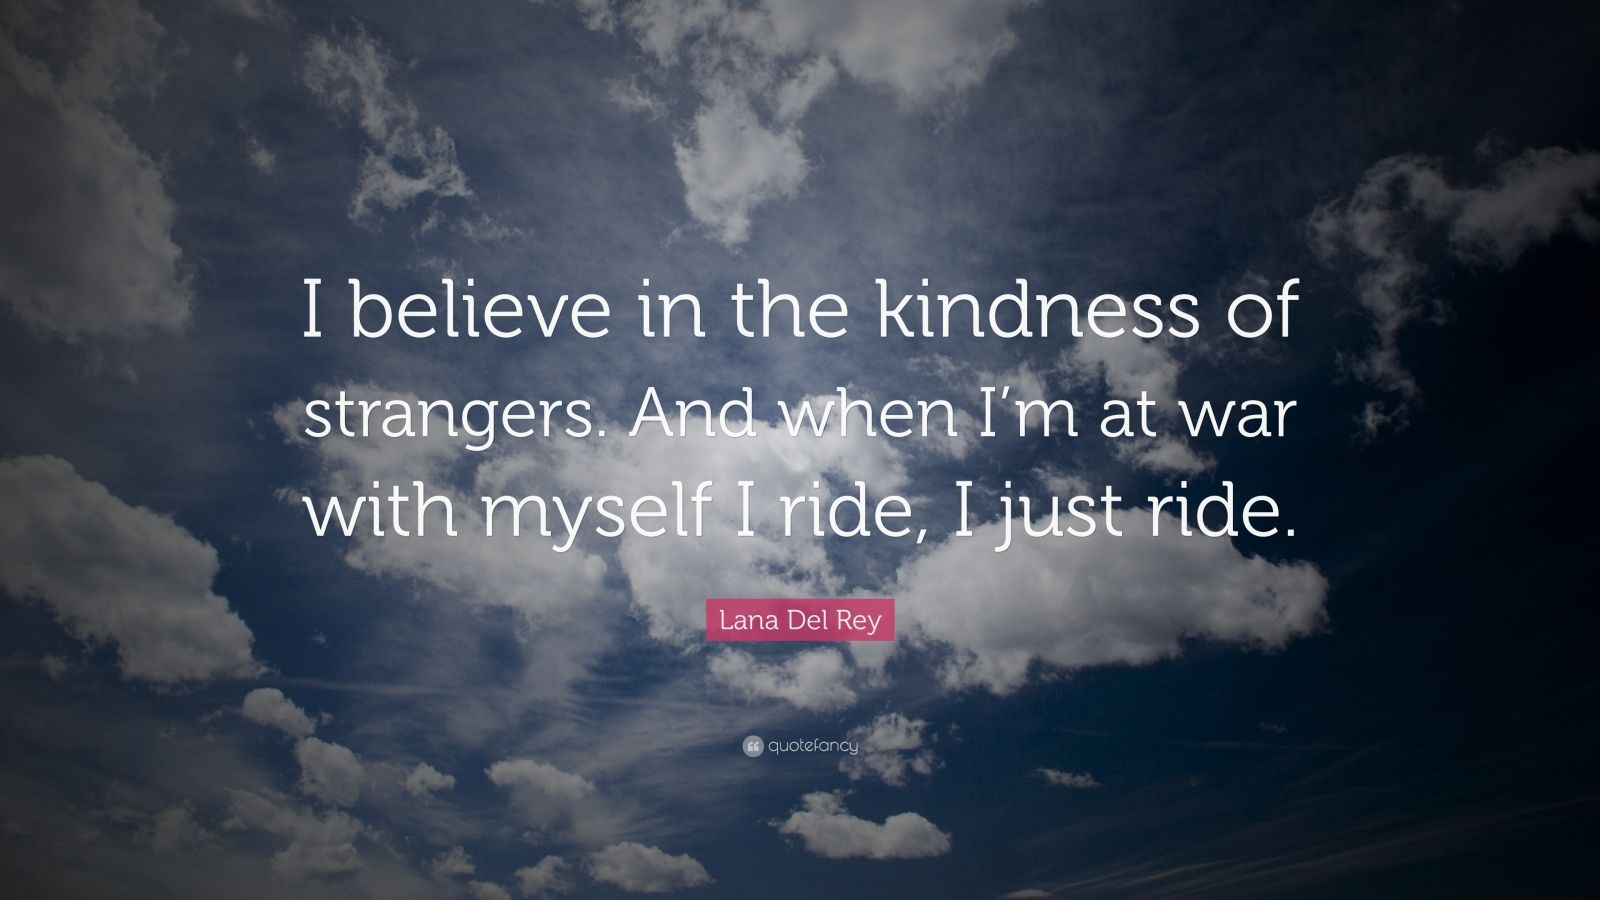 """Lana Del Rey Quote: """"I believe in the kindness of strangers. And when I'm at war with myself I ride, I just ride."""""""